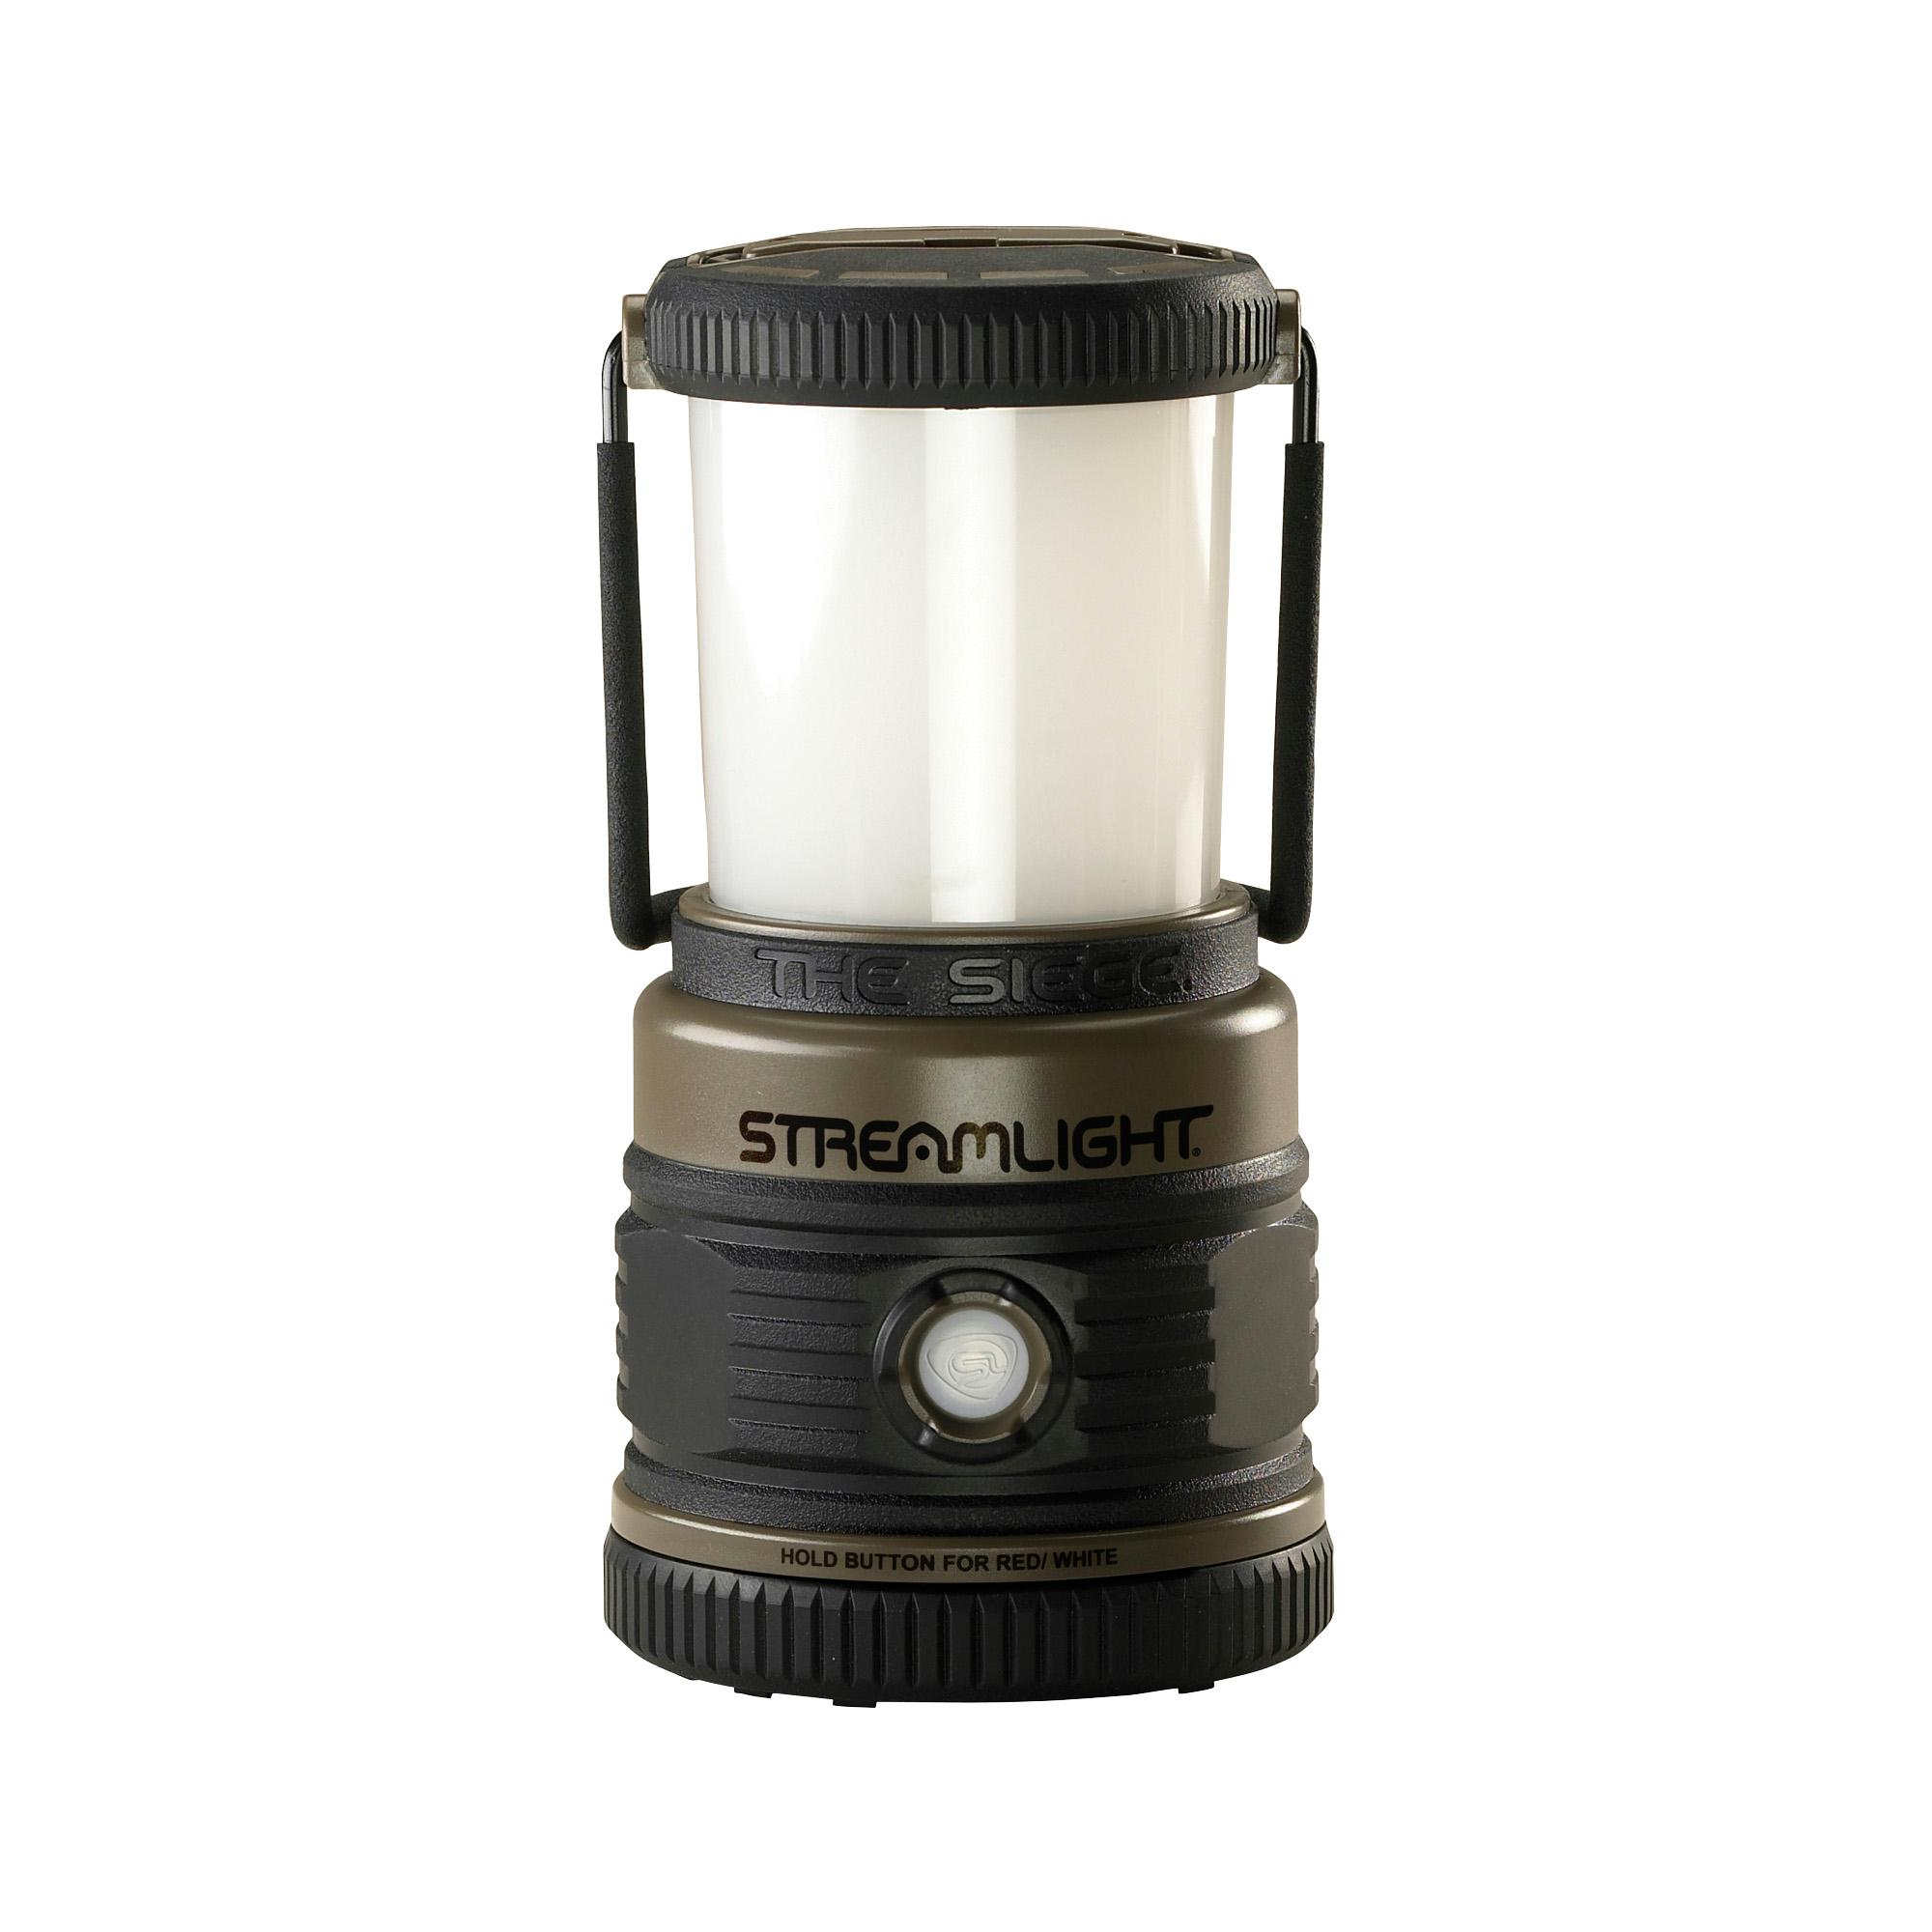 Streamlight Siege 340 Lumen Lantern Coyote Brown